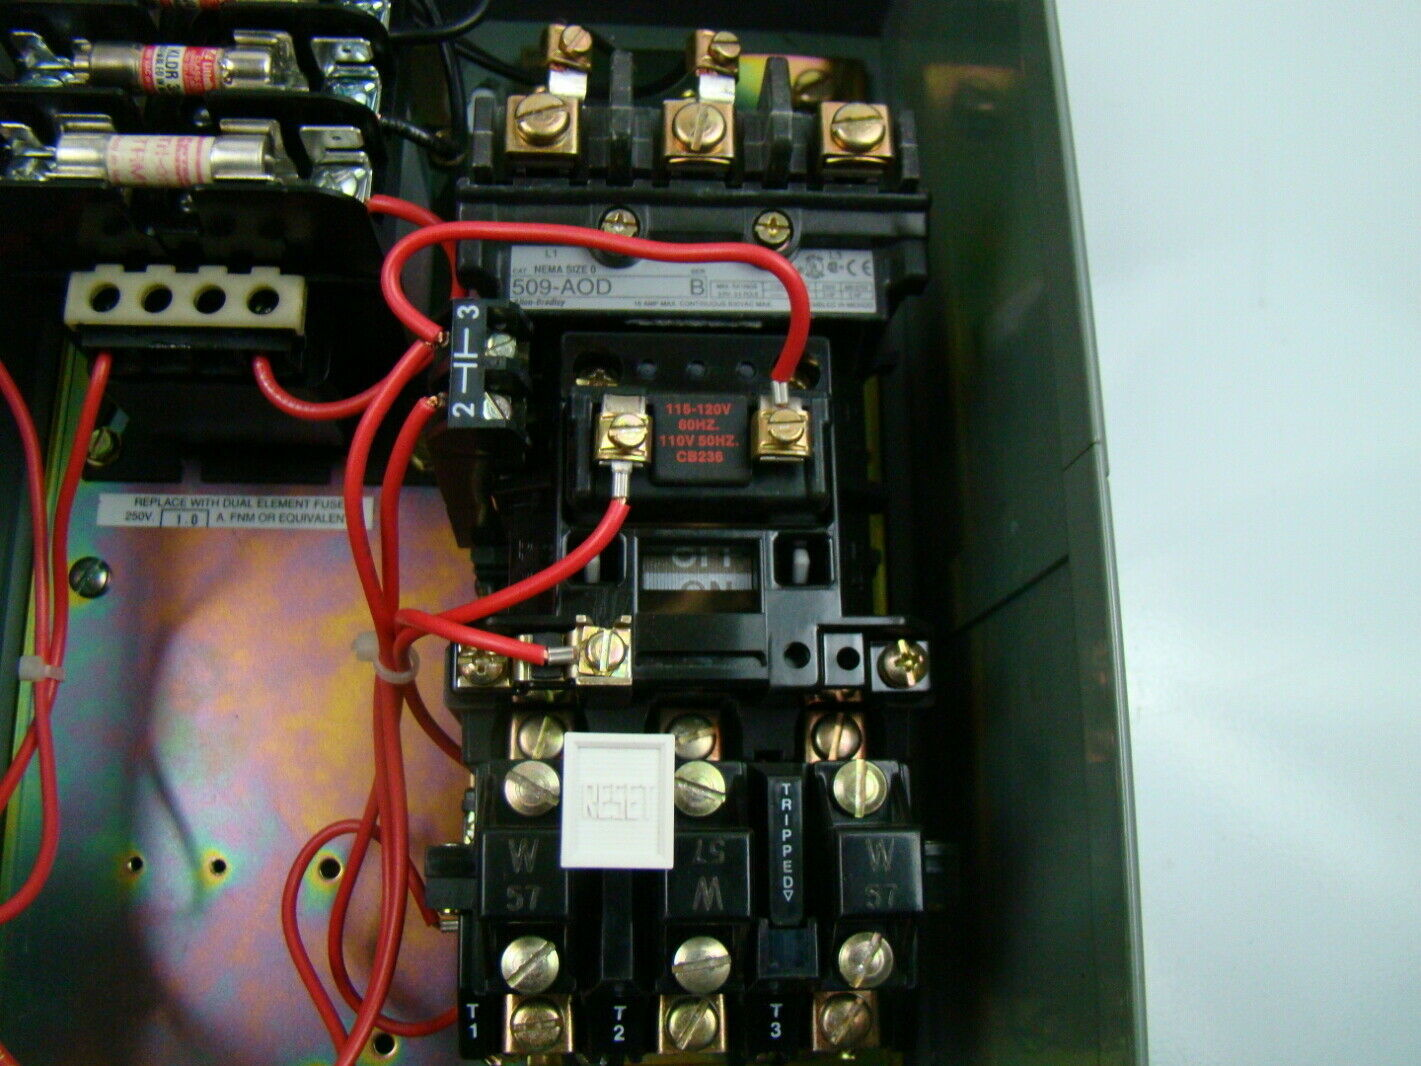 509 Aod Wiring Diagram 22 Images Diagrams Allen Bradley Motor Starter Jf02077 Bulletin Magnetic Controller Aab 1e 6p 7